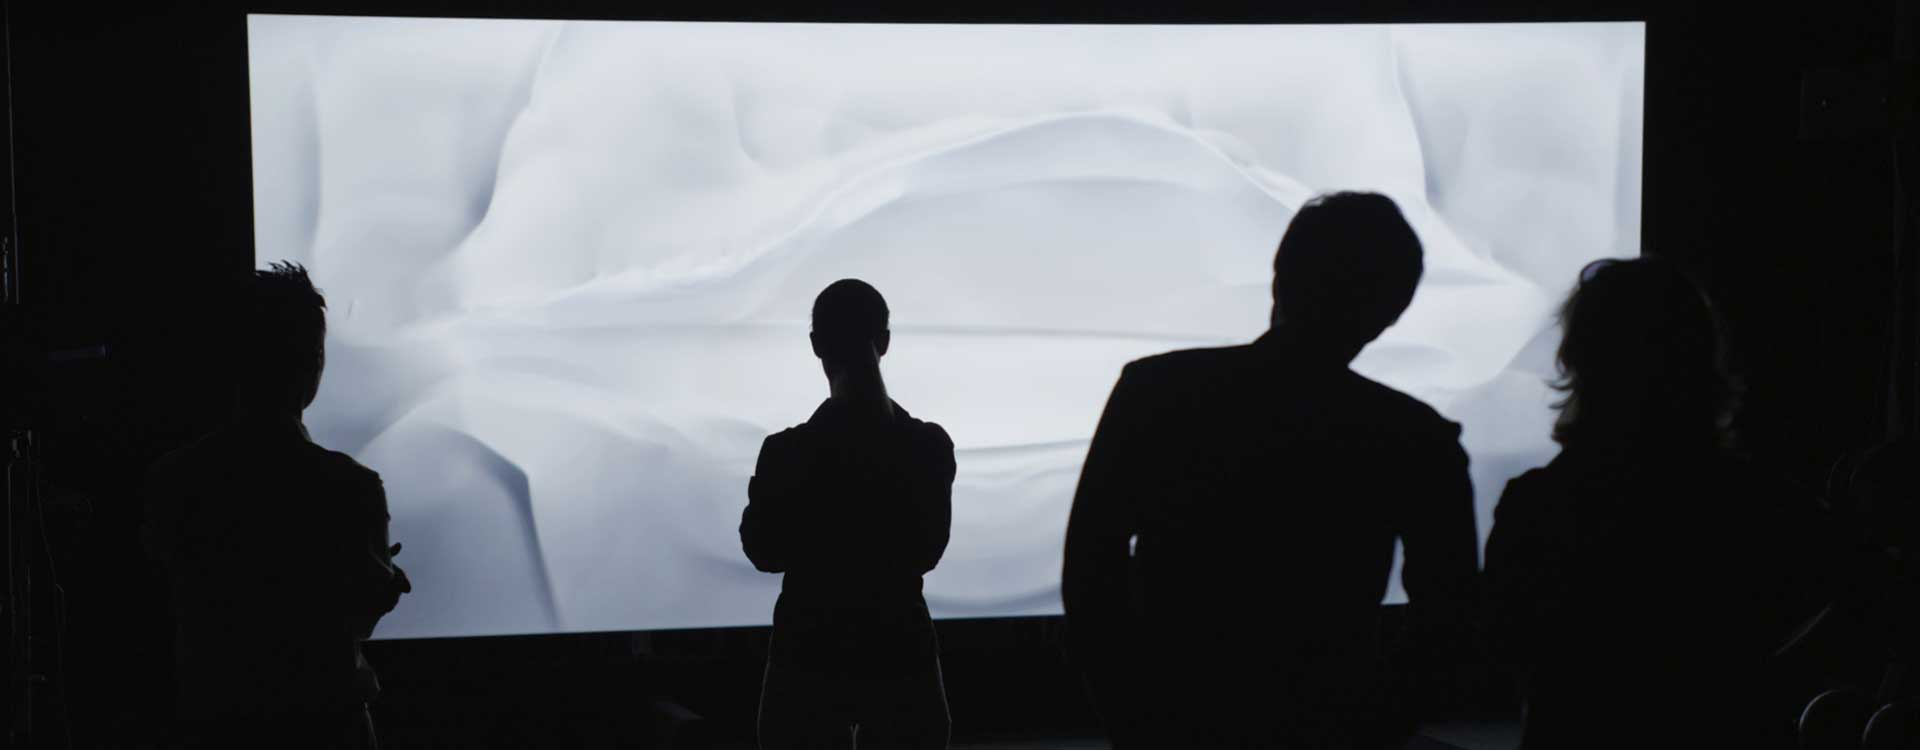 Audience in front of display. Still from Mercedes-Benz Commercial.